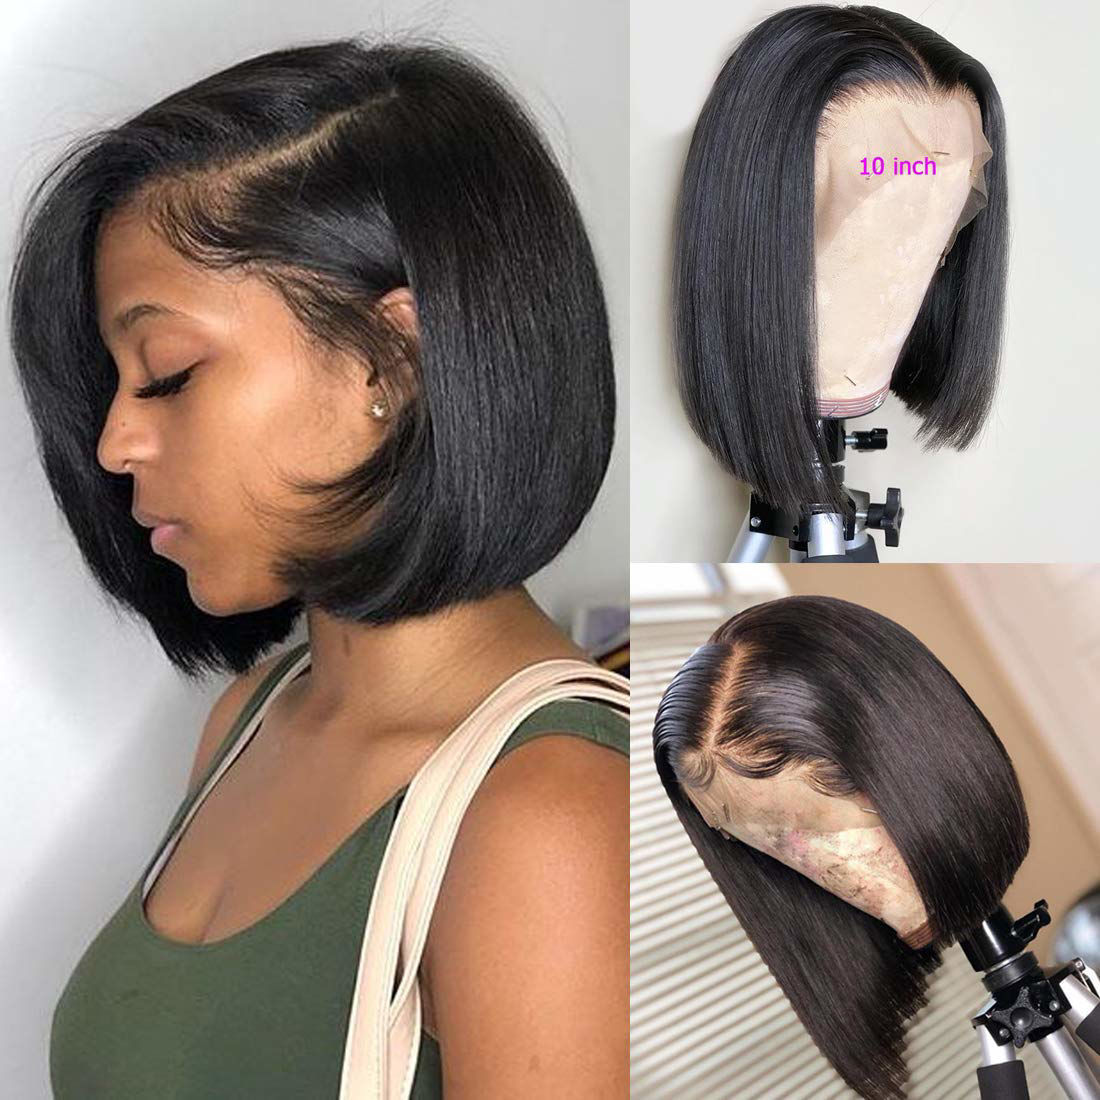 11x11 Lace Front Wig Straight Bob Wigs Lace Front Human Hair Wigs Wholesale